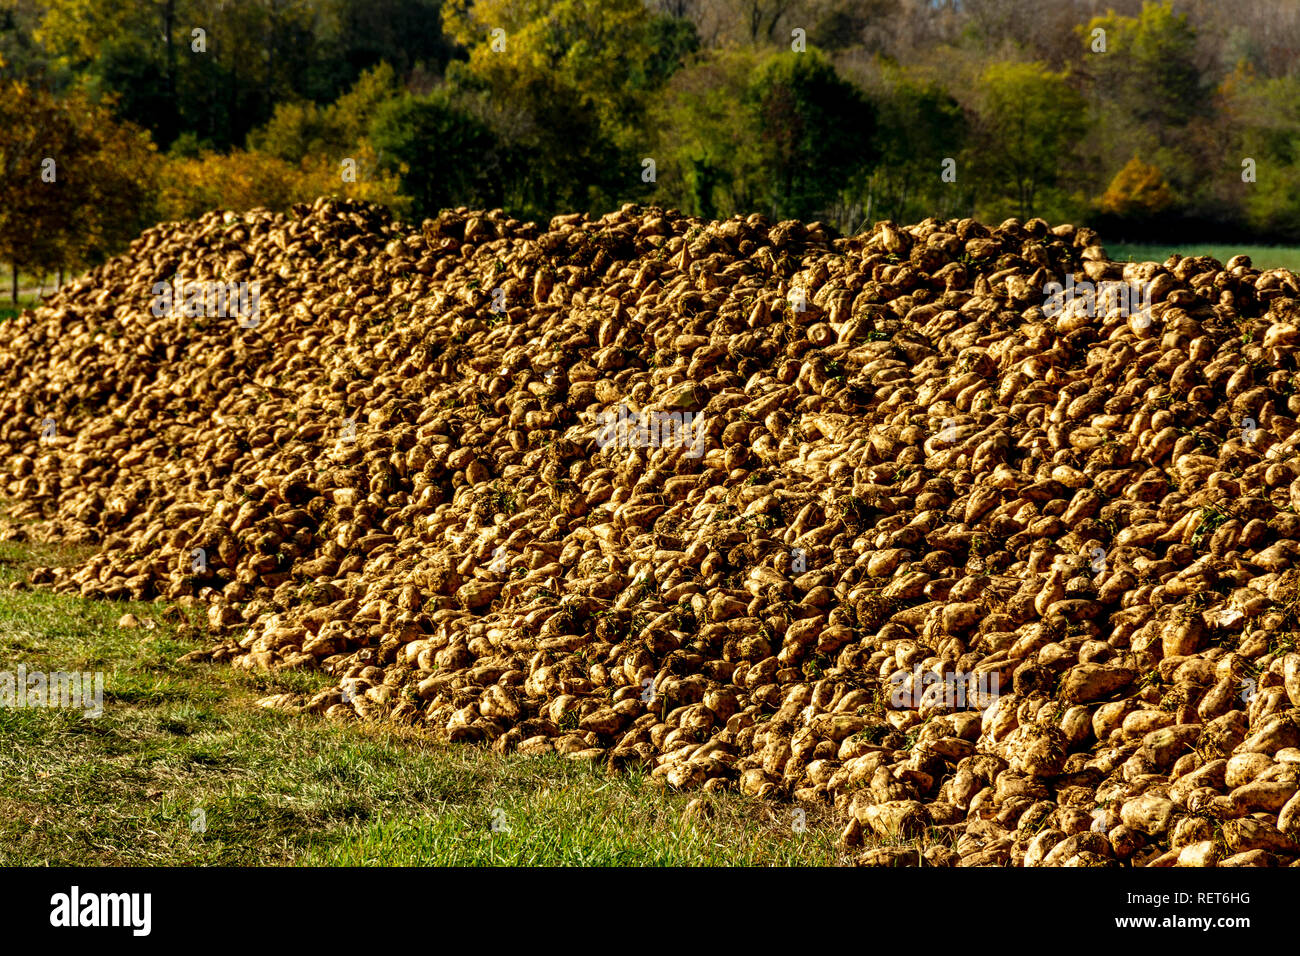 Pile of sugar beet newly harvested in a field, Auvergne, France - Stock Image